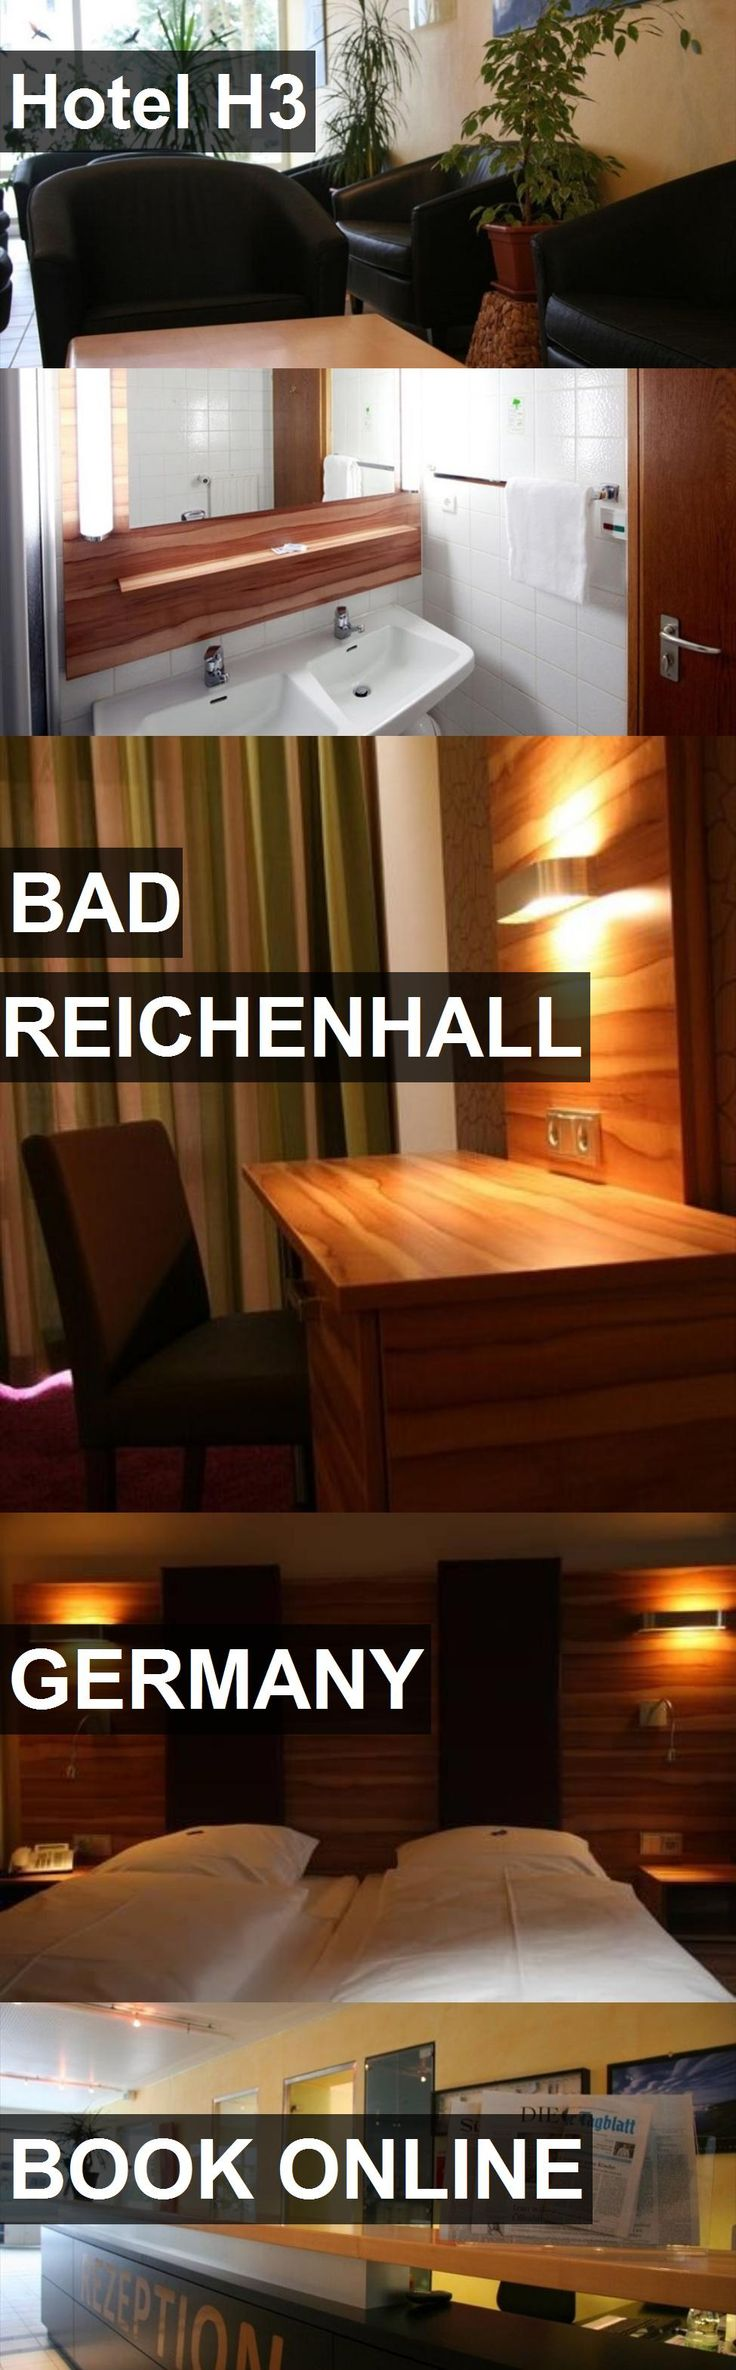 Hotel H3 in Bad Reichenhall, Germany. For more information, photos, reviews and best prices please follow the link. #Germany #BadReichenhall #travel #vacation #hotel